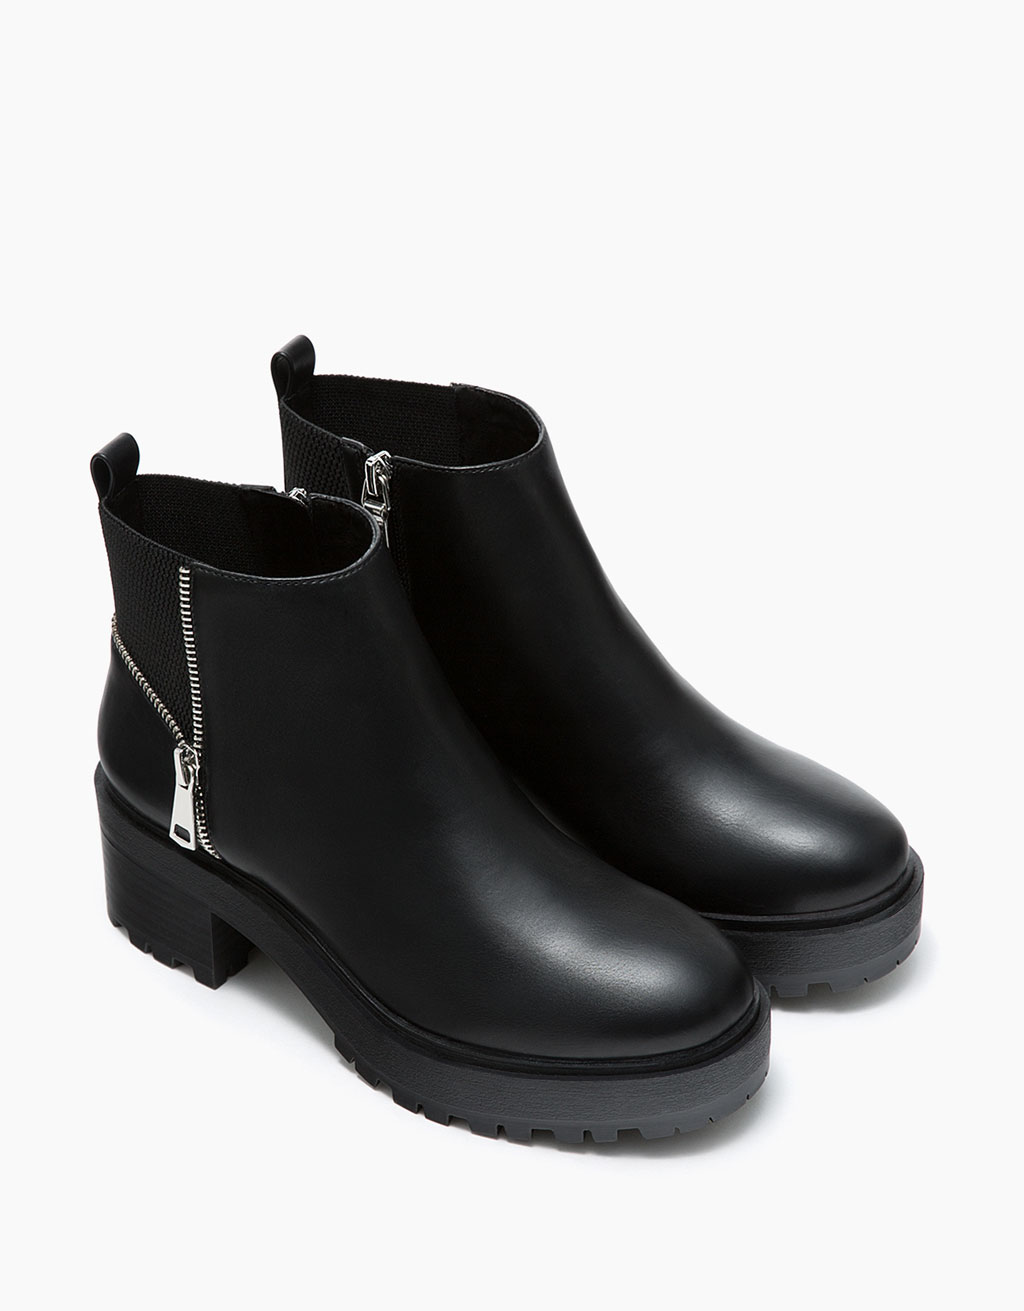 Flat platform ankle boots with zip and elastic